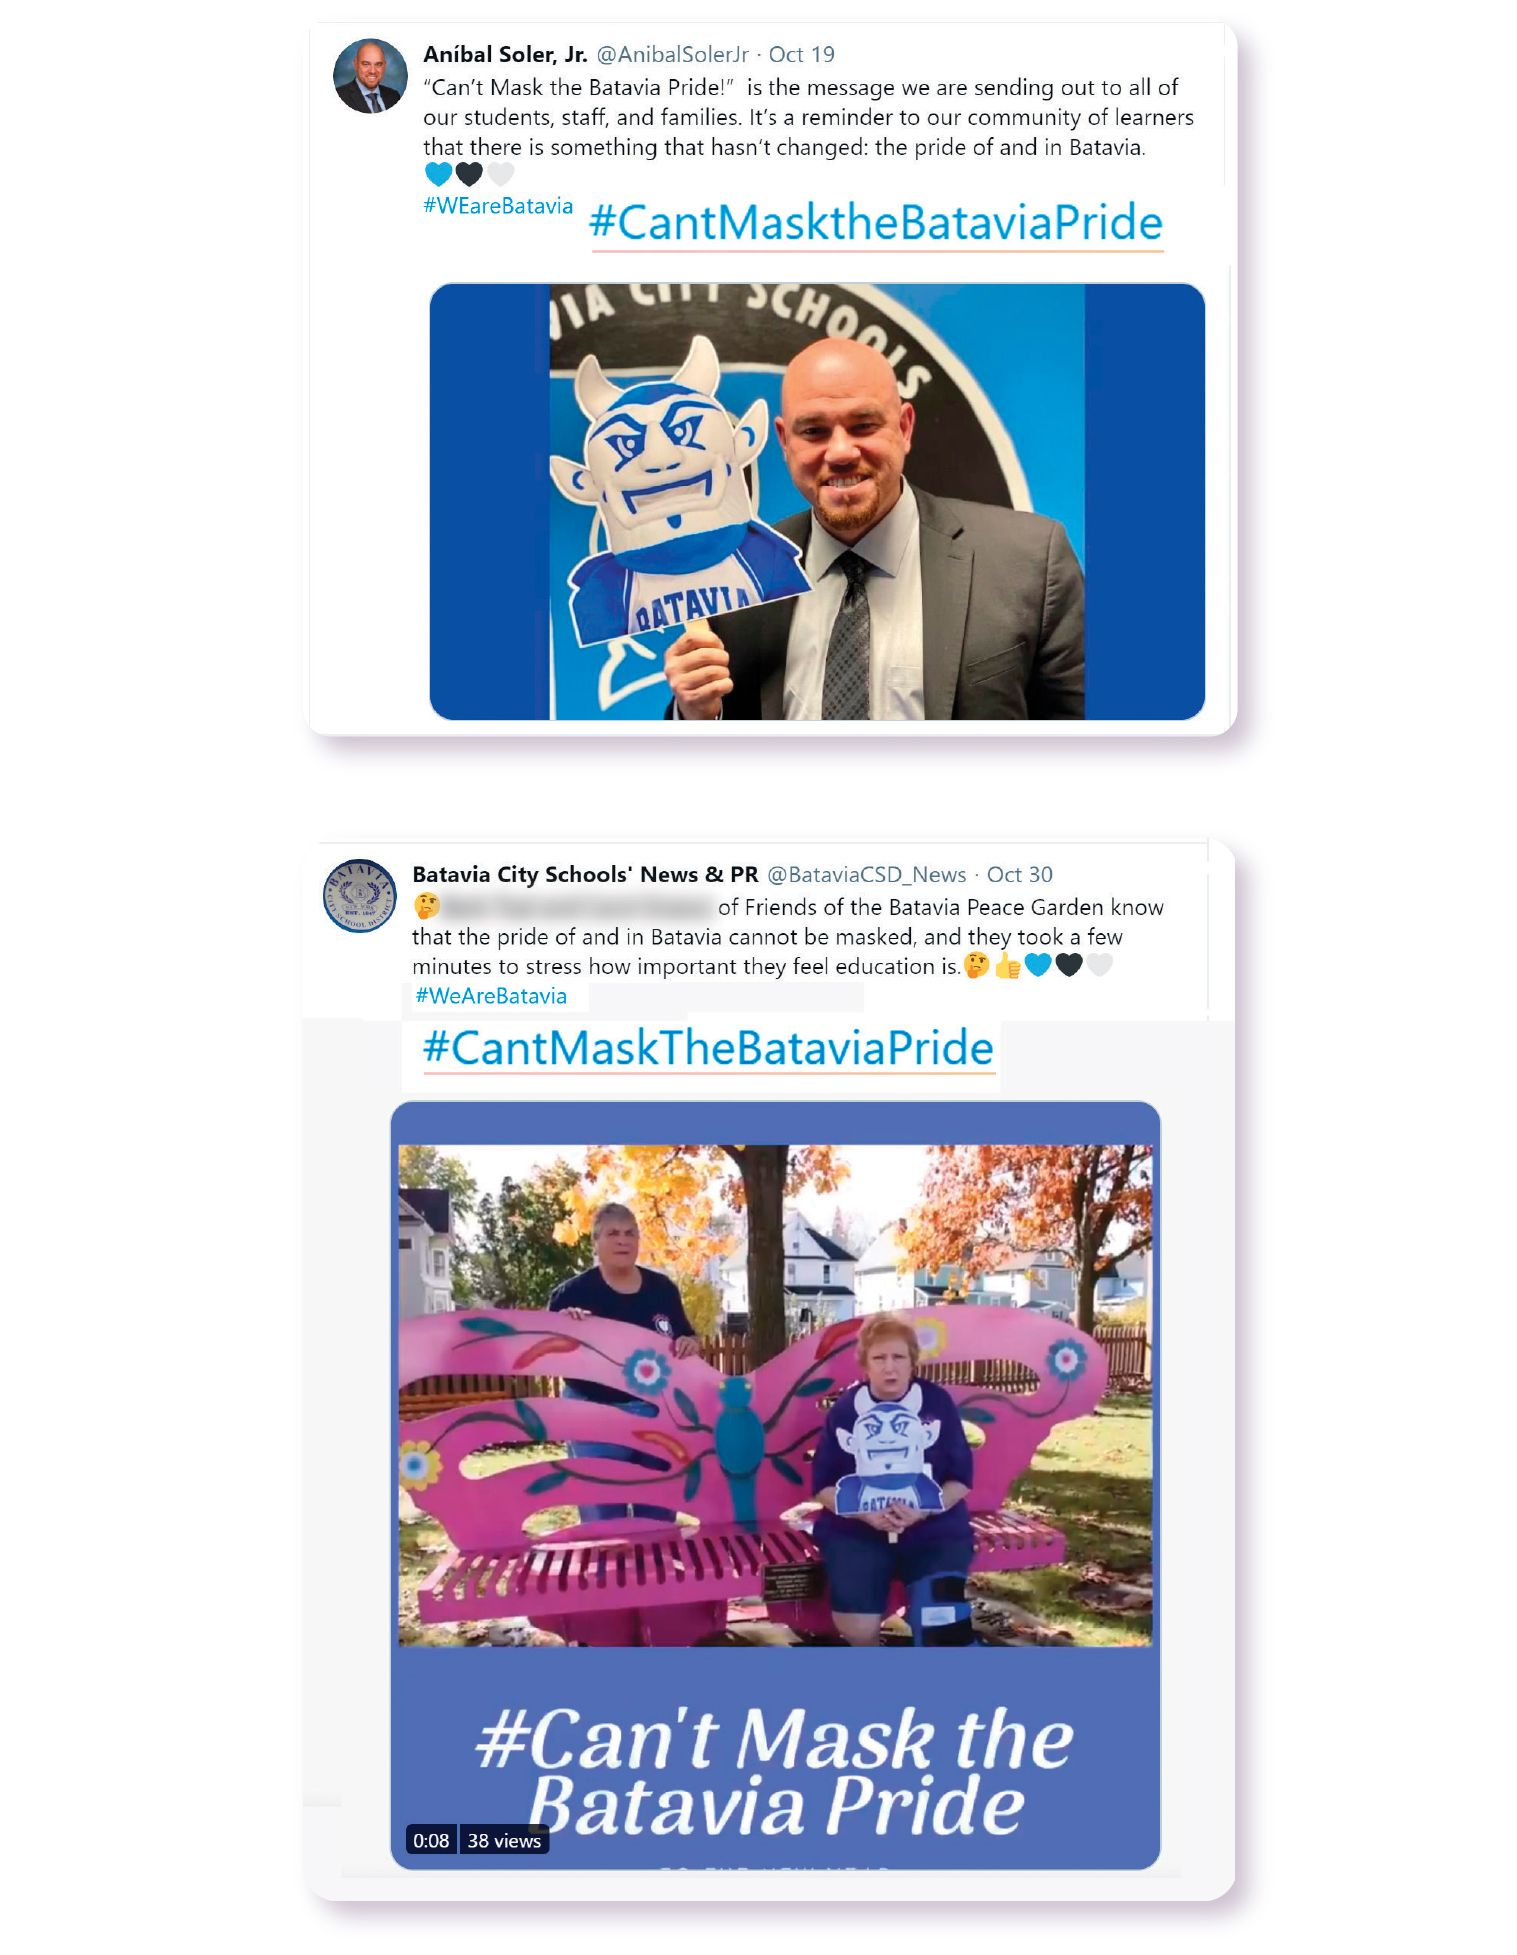 Image: Both the Batavia City School District and their Superintendent, Dr. Anibal Soler, Jr. utilize the hashtag #CantMasktheBataviaPride to showcase their community's school spirit on Twitter.